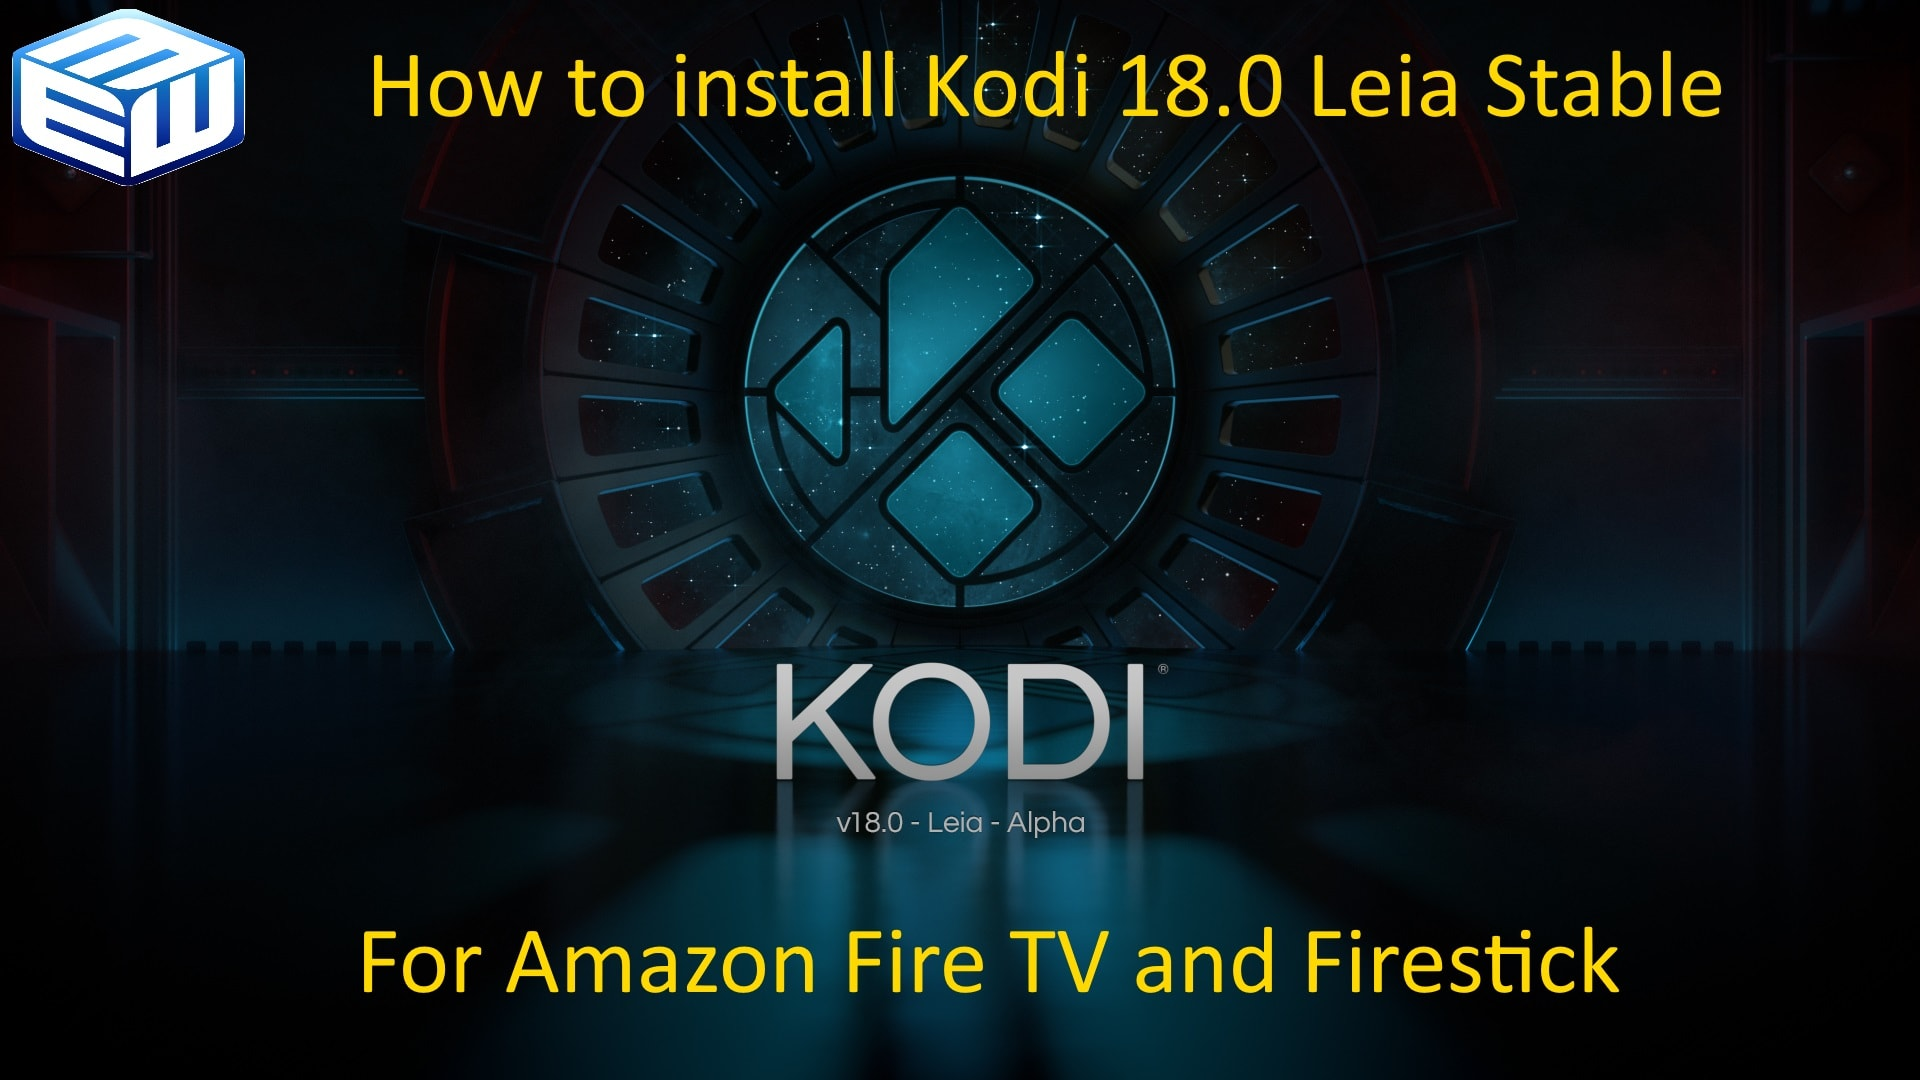 HOW-TO Install Kodi 18.0 update for Amazon FireSticks and Fire TVs